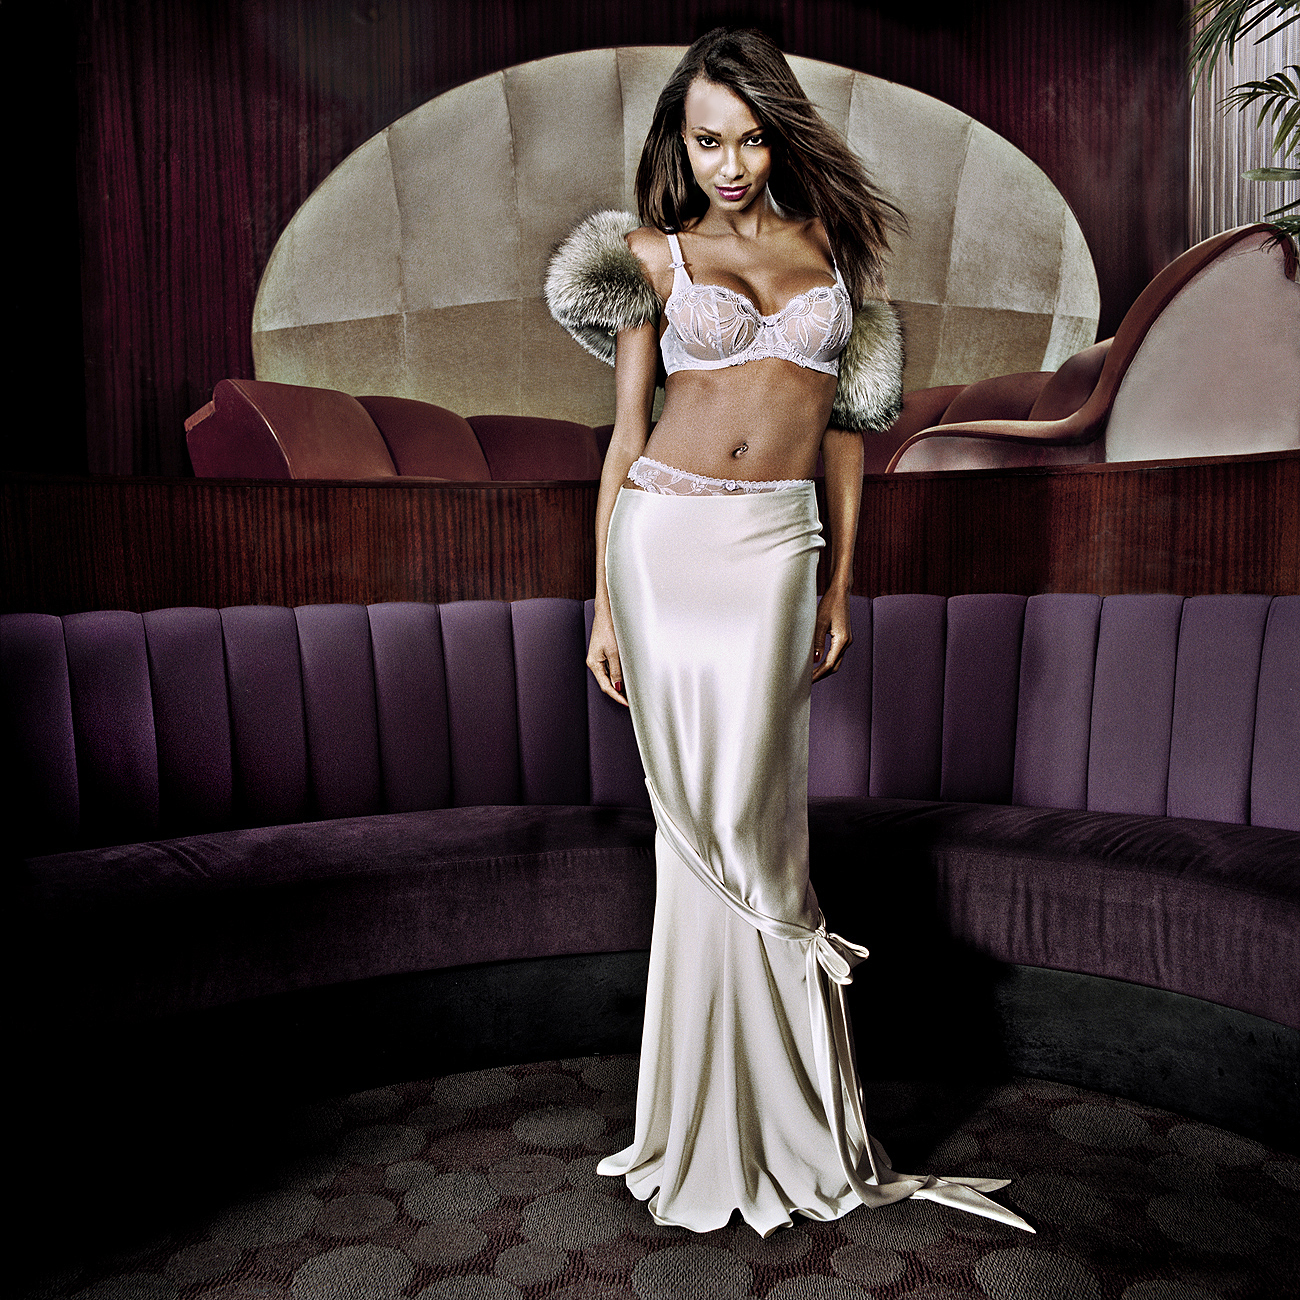 Tony_Ward_photography_neiman_marcus_picture_new_york_Penthouse_club_lingerie